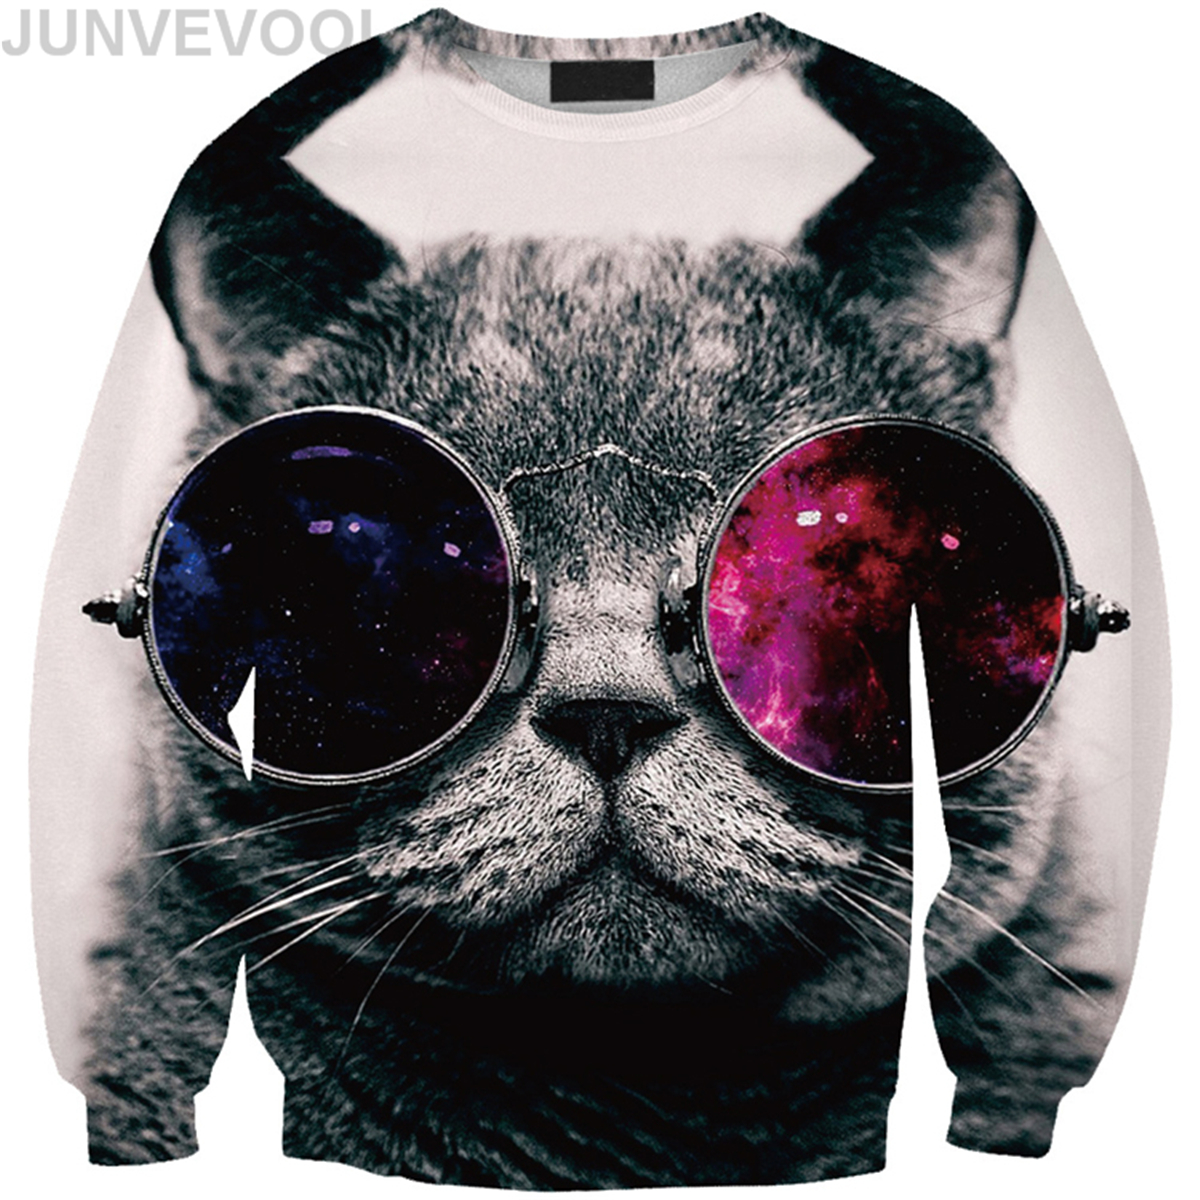 Cool Cat Digital Printed Hoodies Women Elegant O Neck Tees Ladies Long Sleeve Vogue Hoodies Fashion Hot Sale Newly Tops Clothing